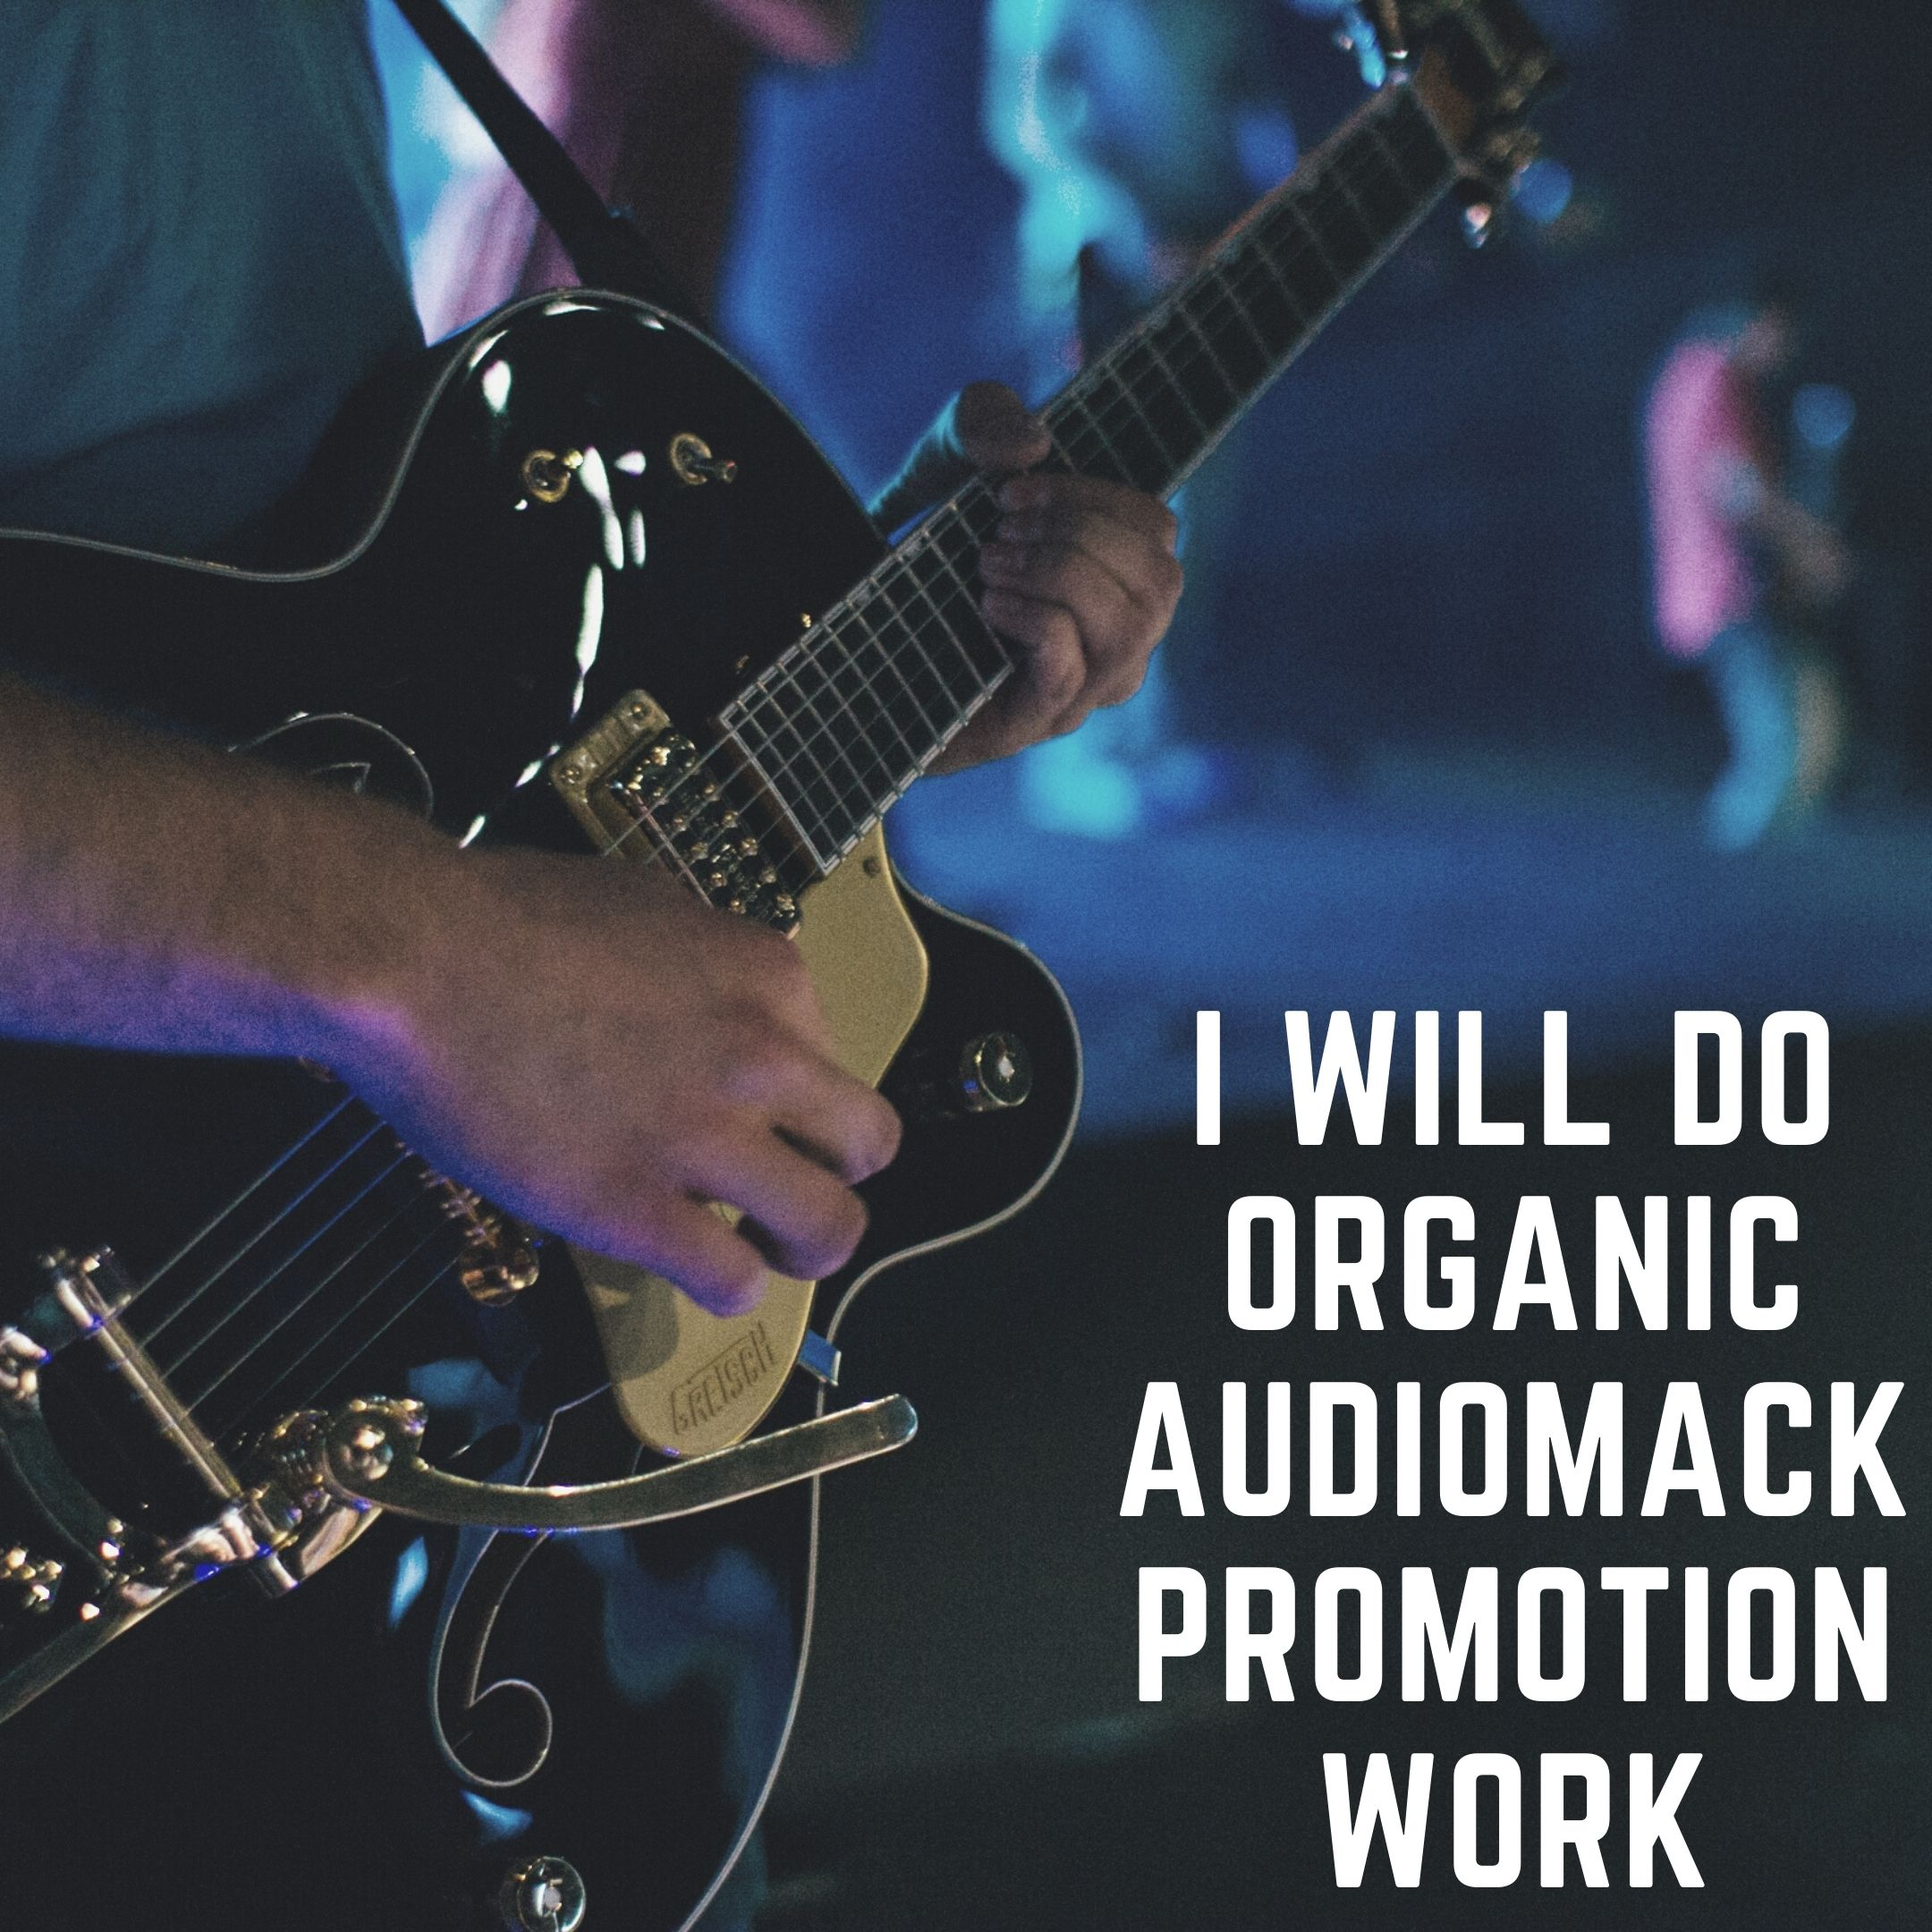 I will do organic audiomack promotion work